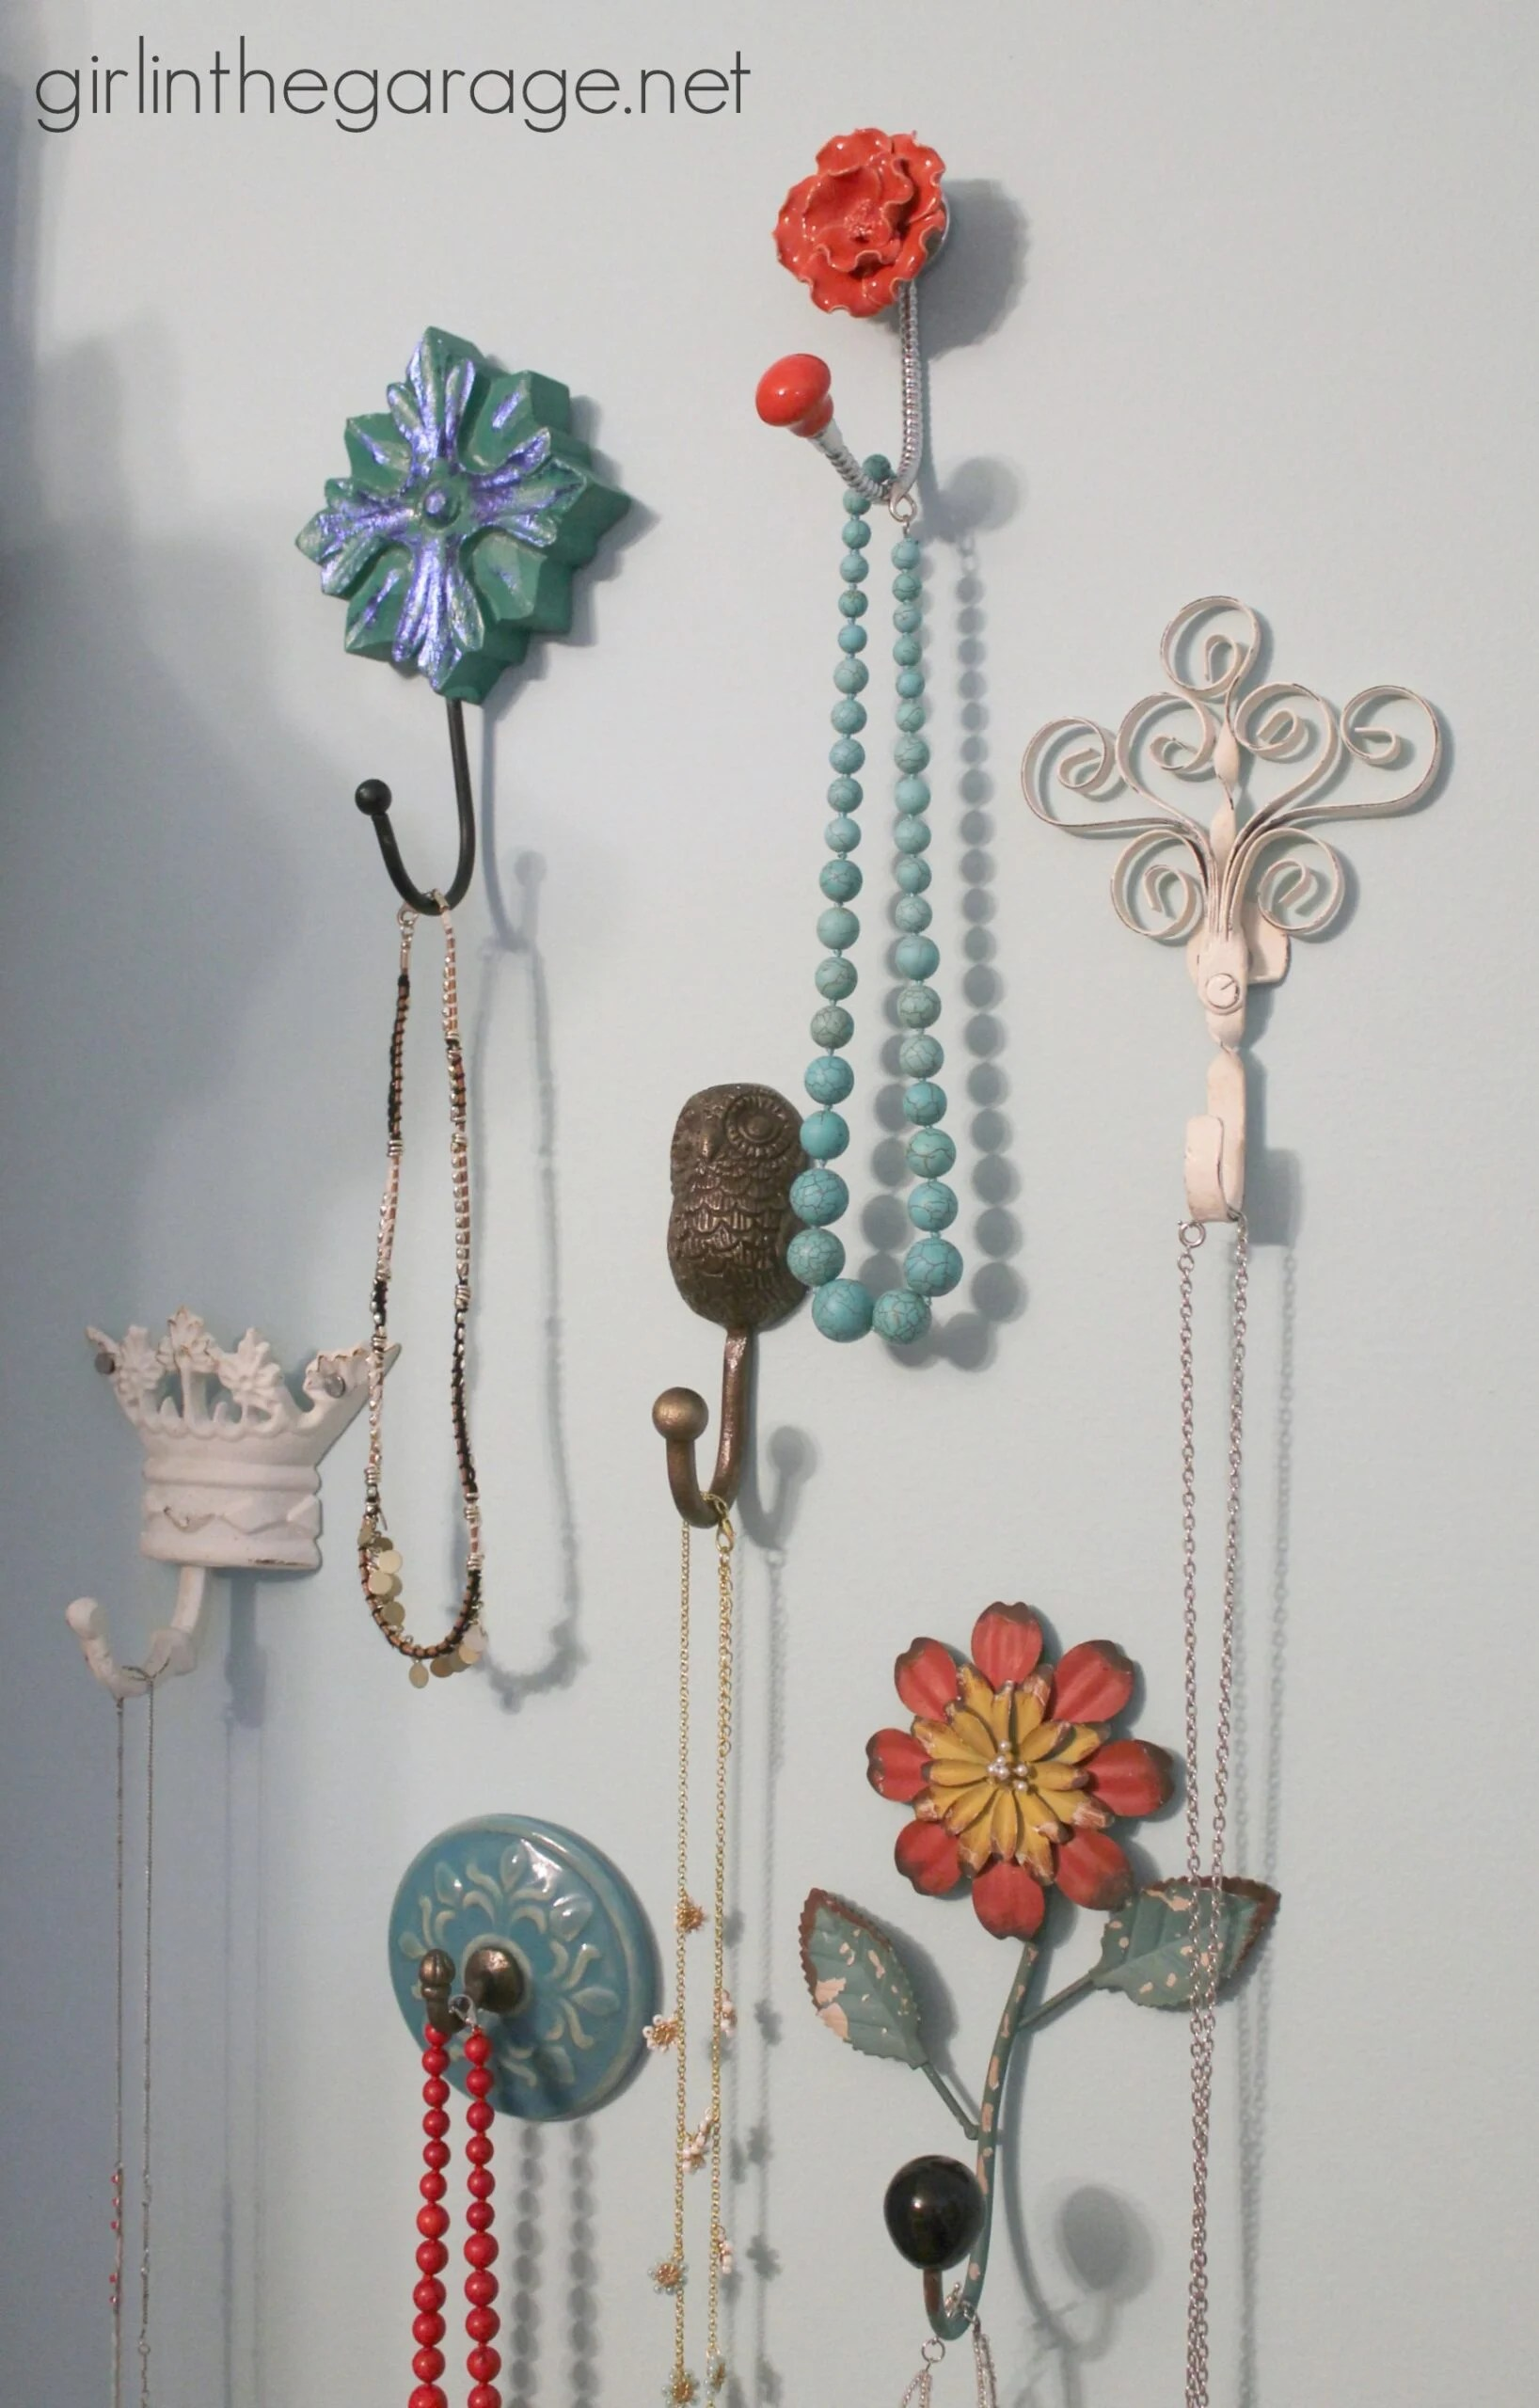 Various hooks used to hang jewelry on a wall